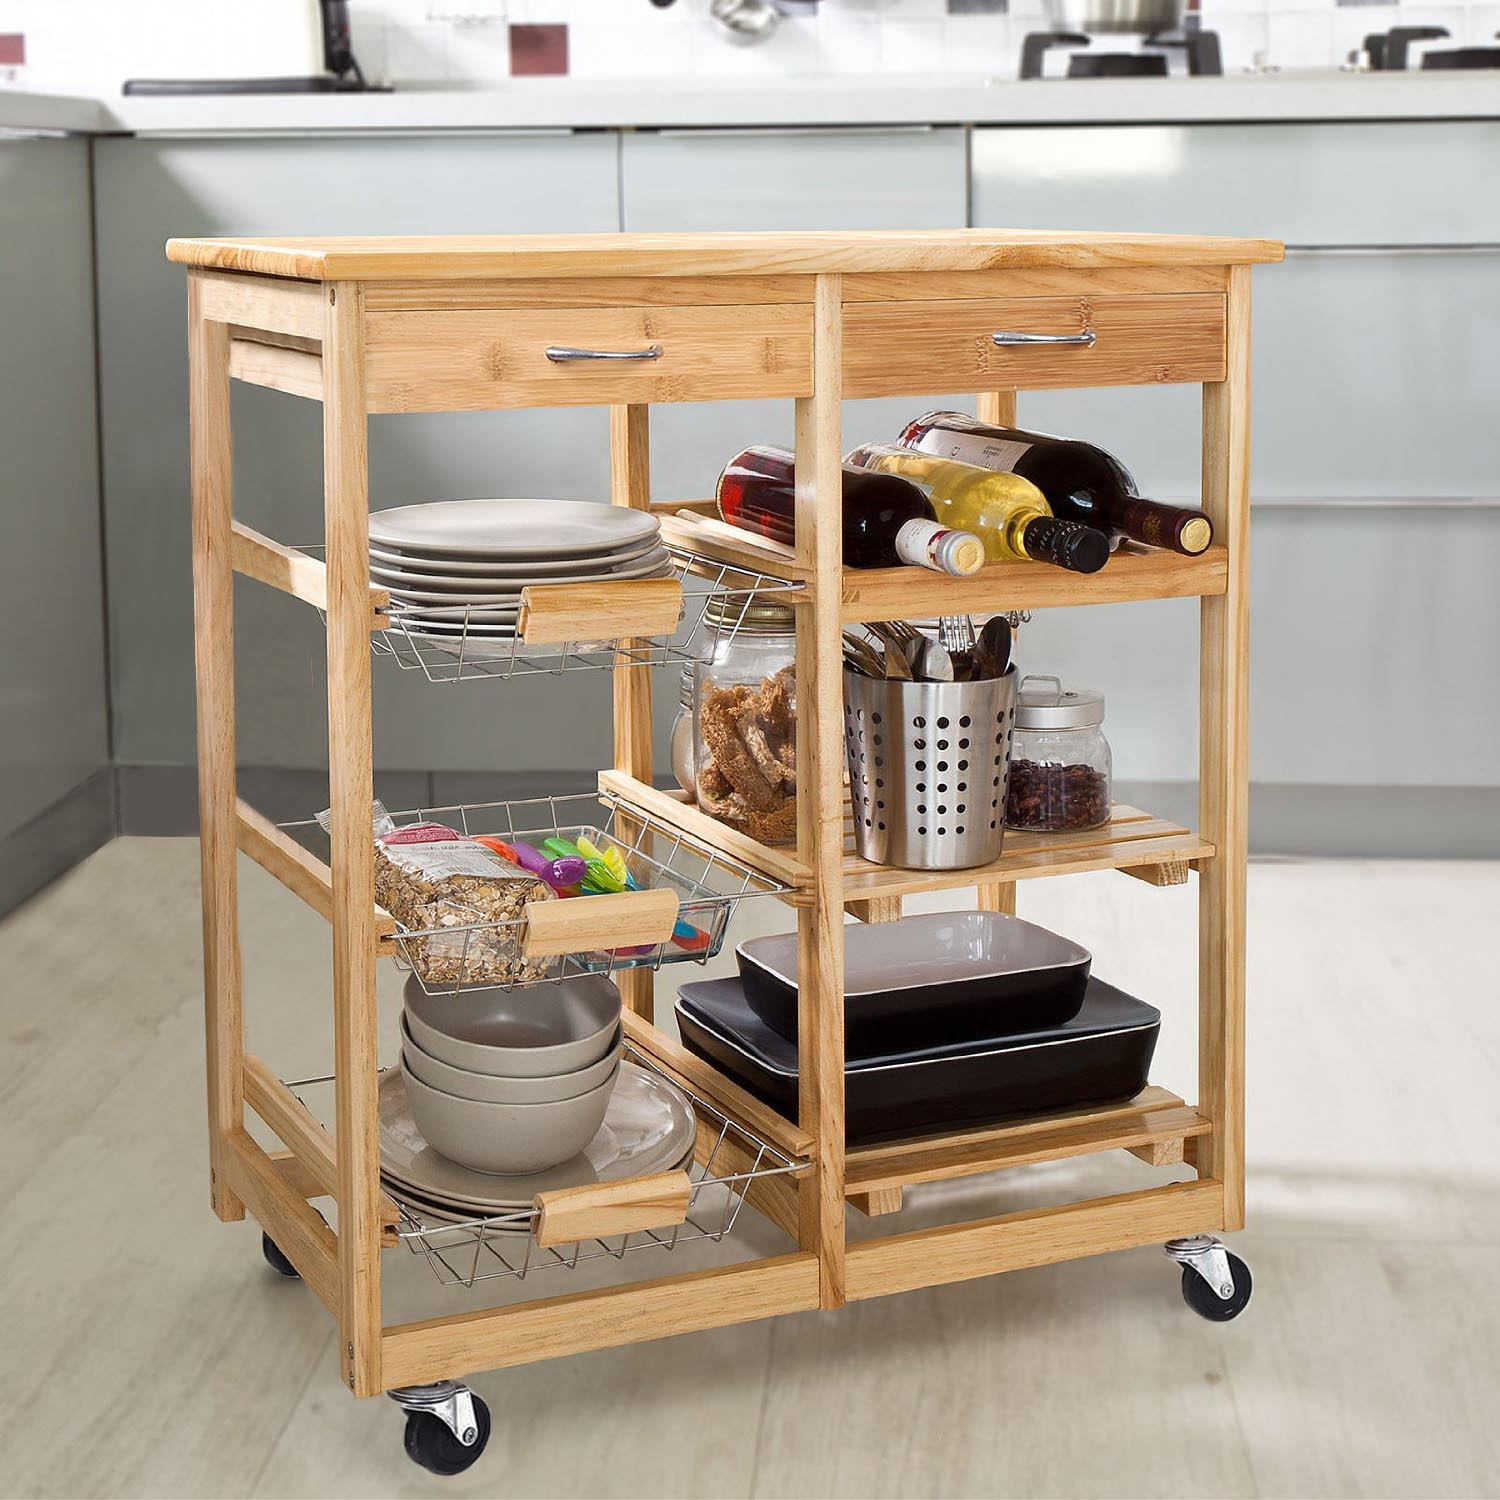 Zeny Rolling Kitchen Storage Cart Wood Dining Trolley W 2 Drawers And Shelves